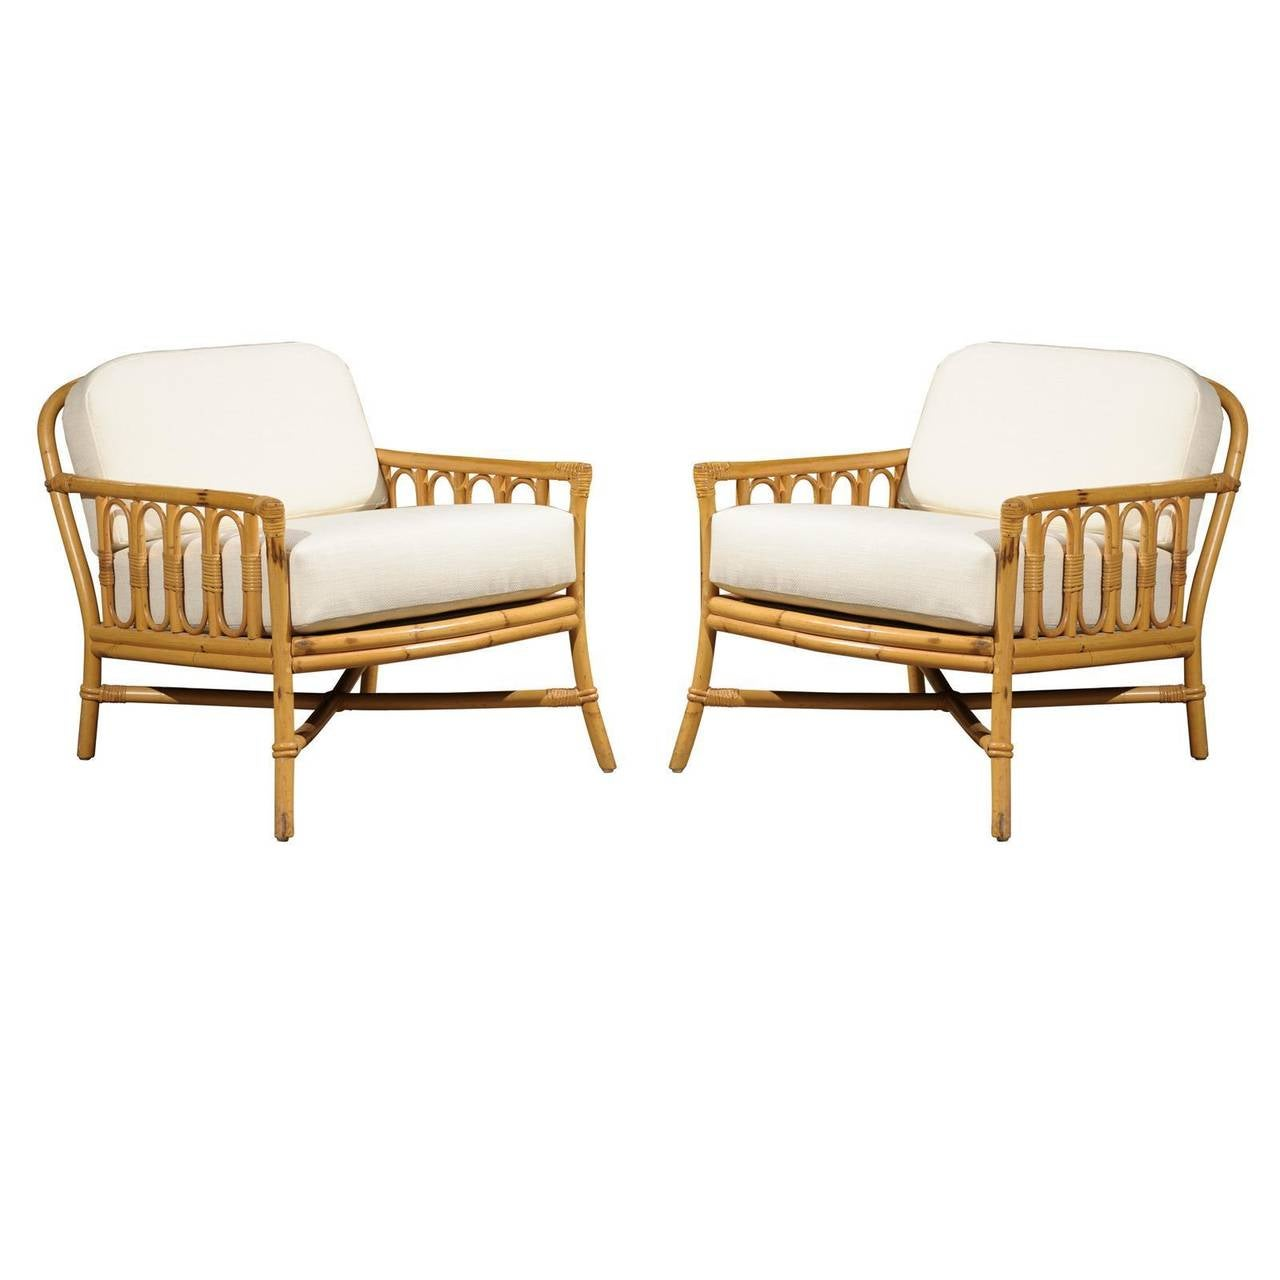 Vintage Rattan Chairs Decorative Pair Of Vintage Rattan Lounge Chairs By Ficks